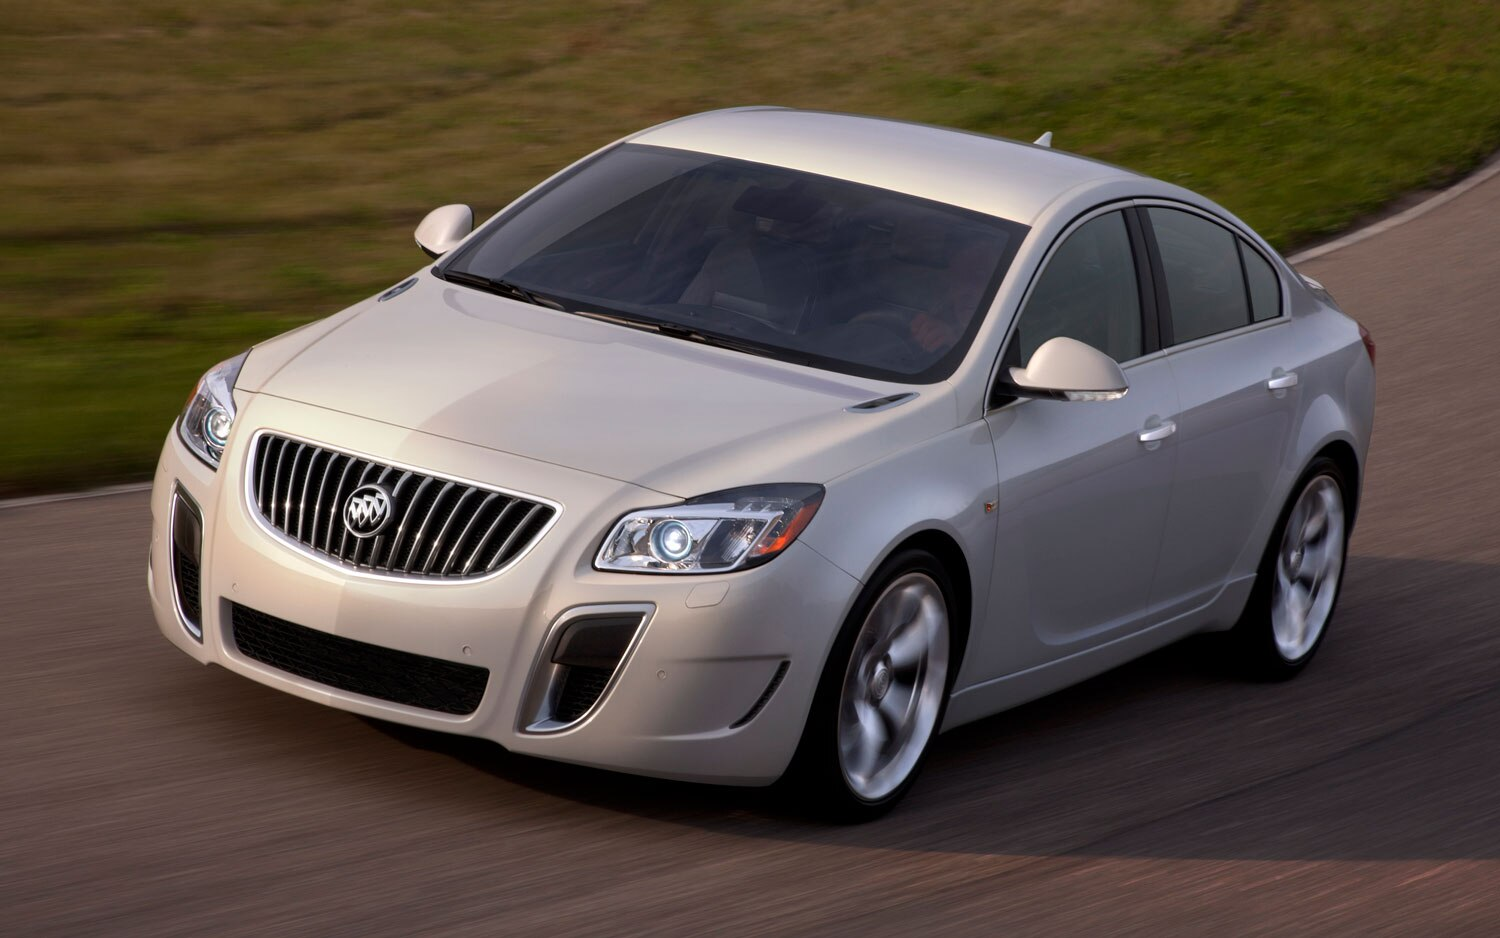 2012 Buick Regal Gs Front Three Quarter1